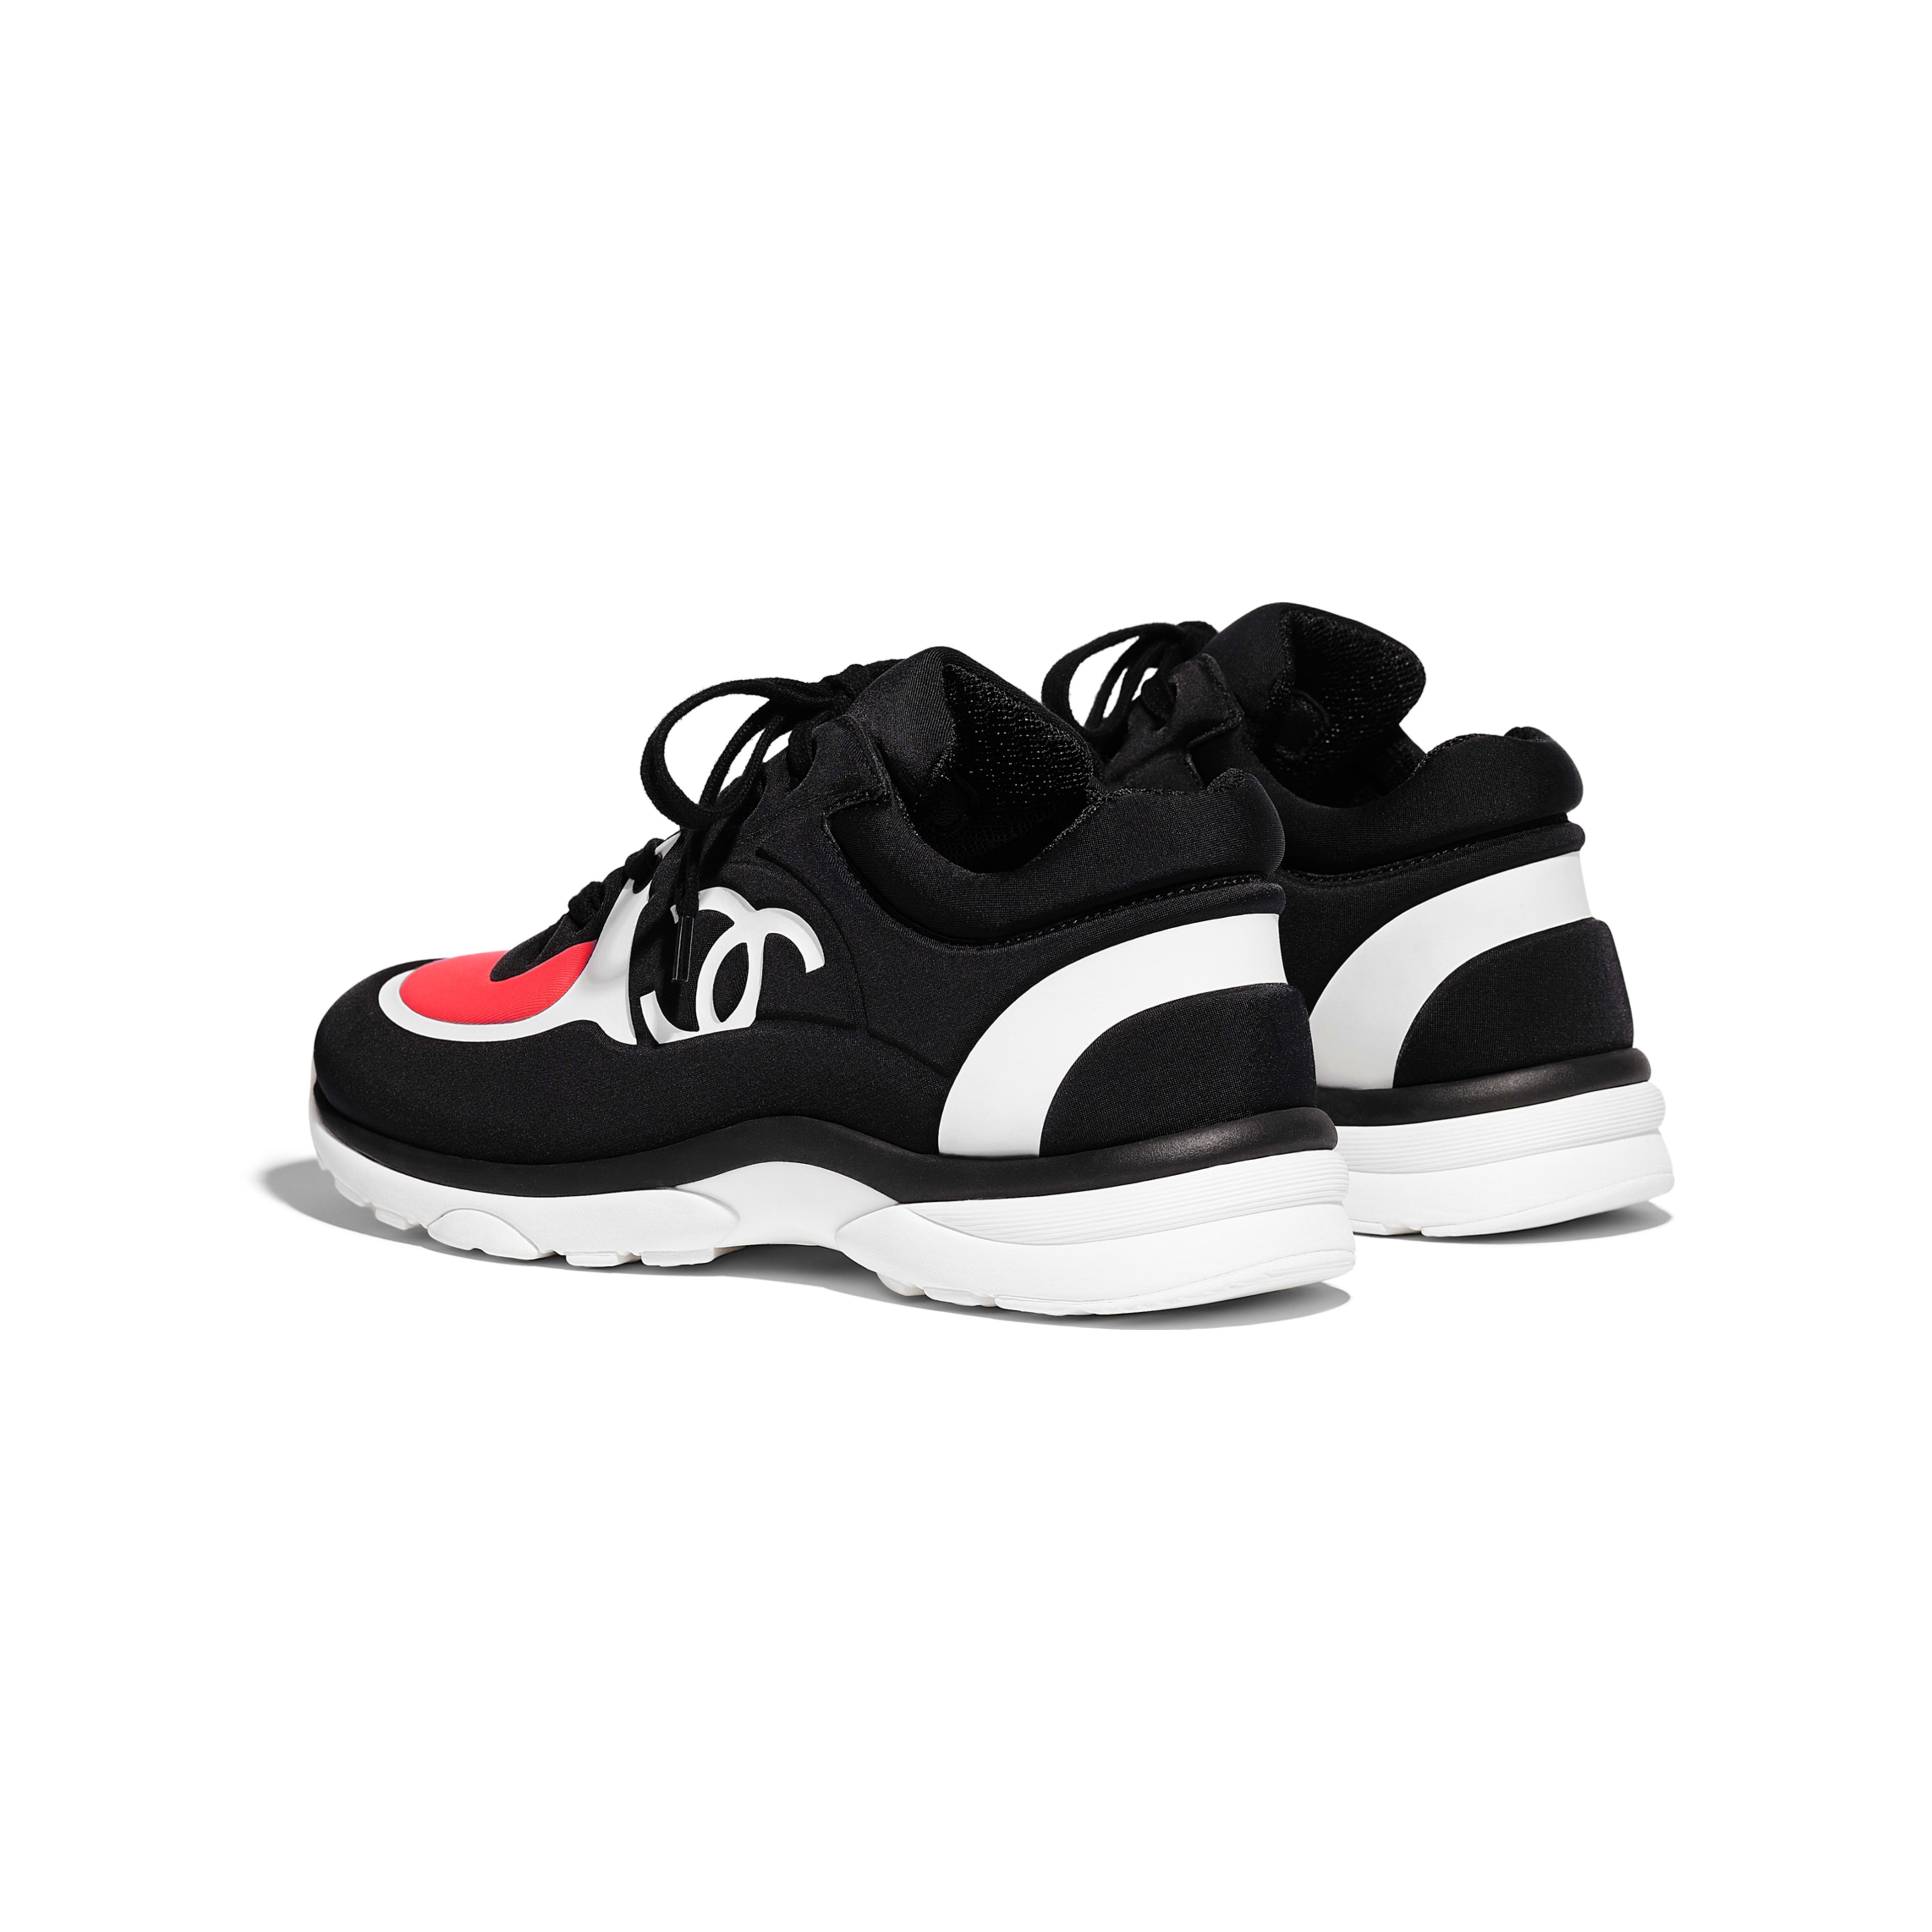 391a4a3e Lycra Black & Coral Sneakers | CHANEL